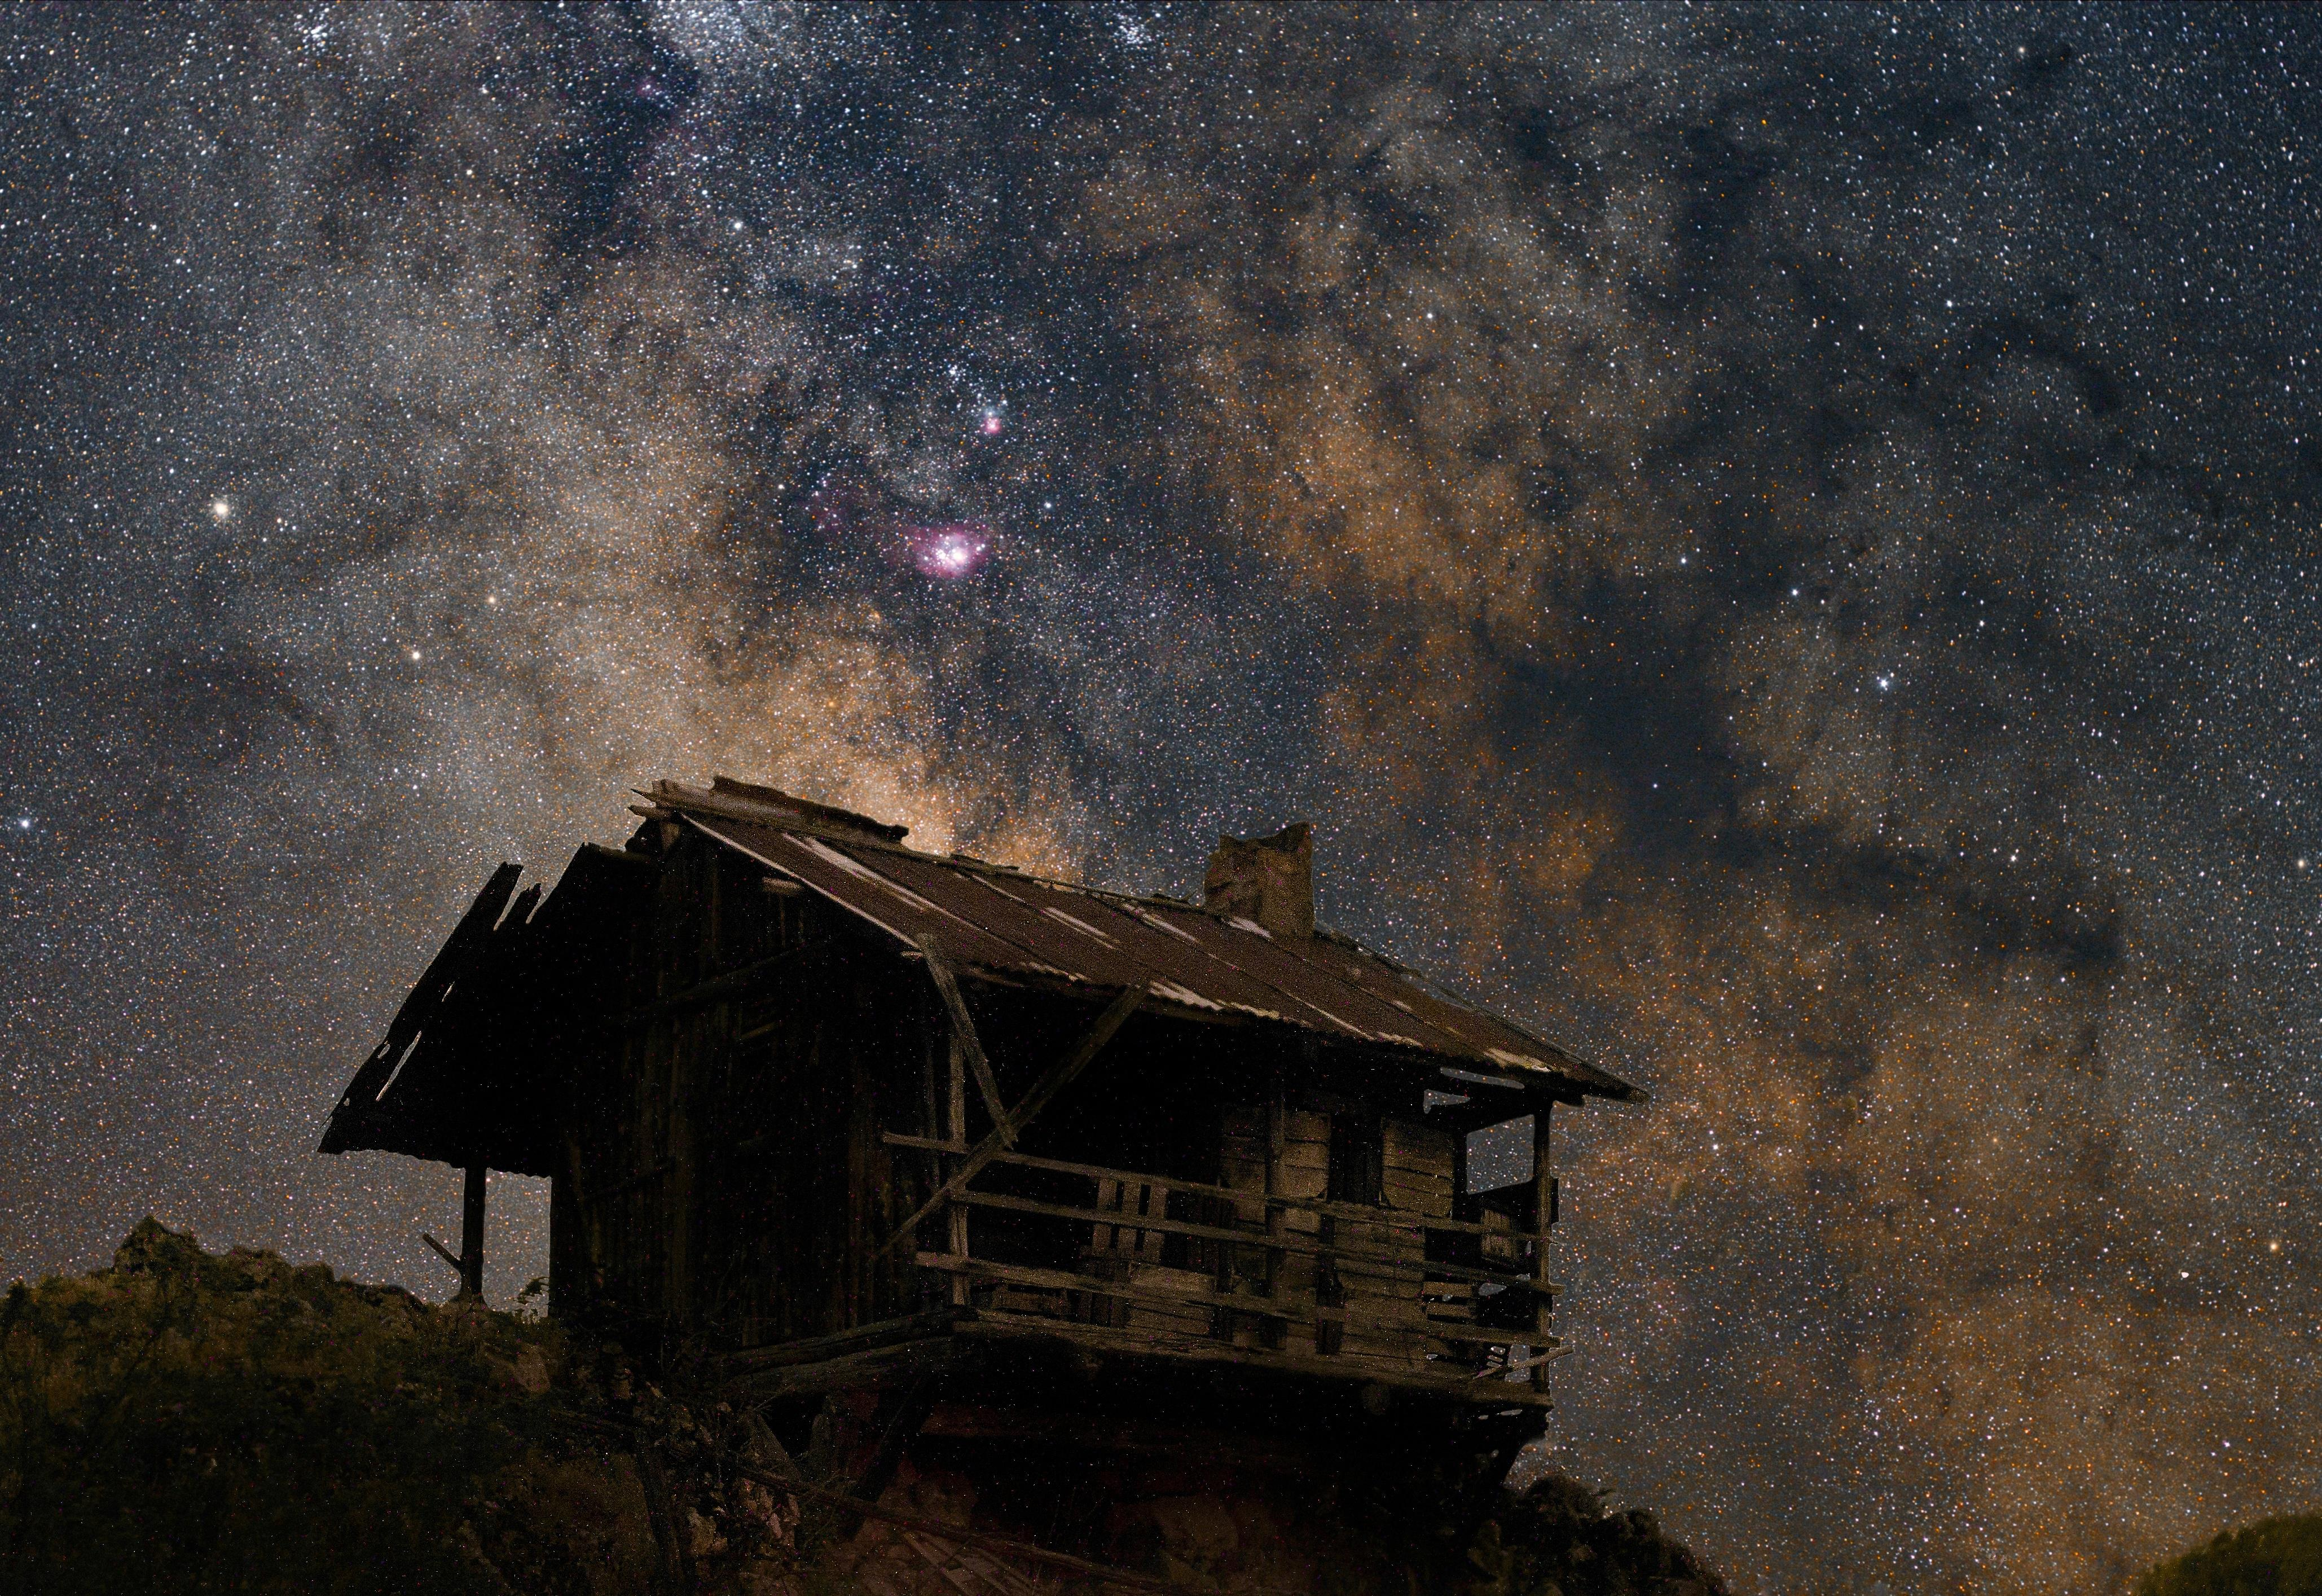 Milkyway over an old house